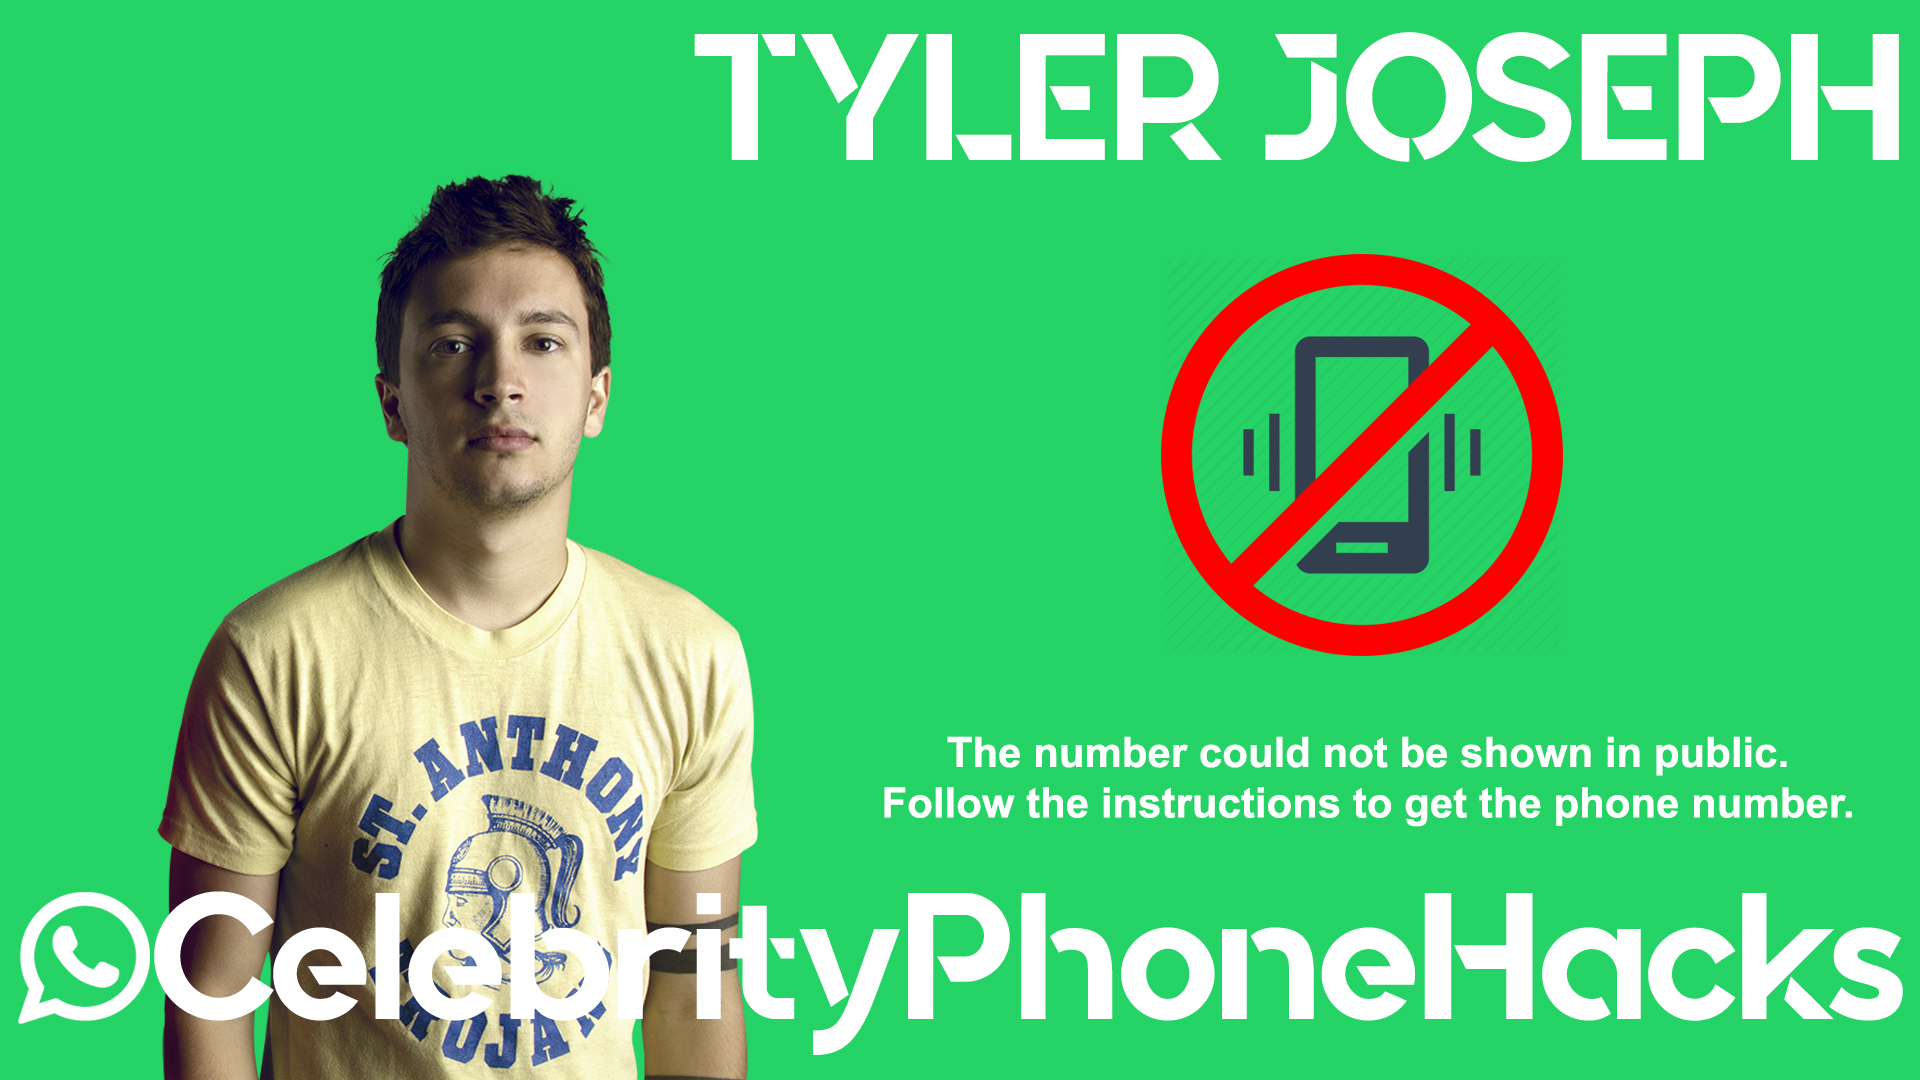 Tyler Joseph real phone number 2019 whatsapp hacked leaked